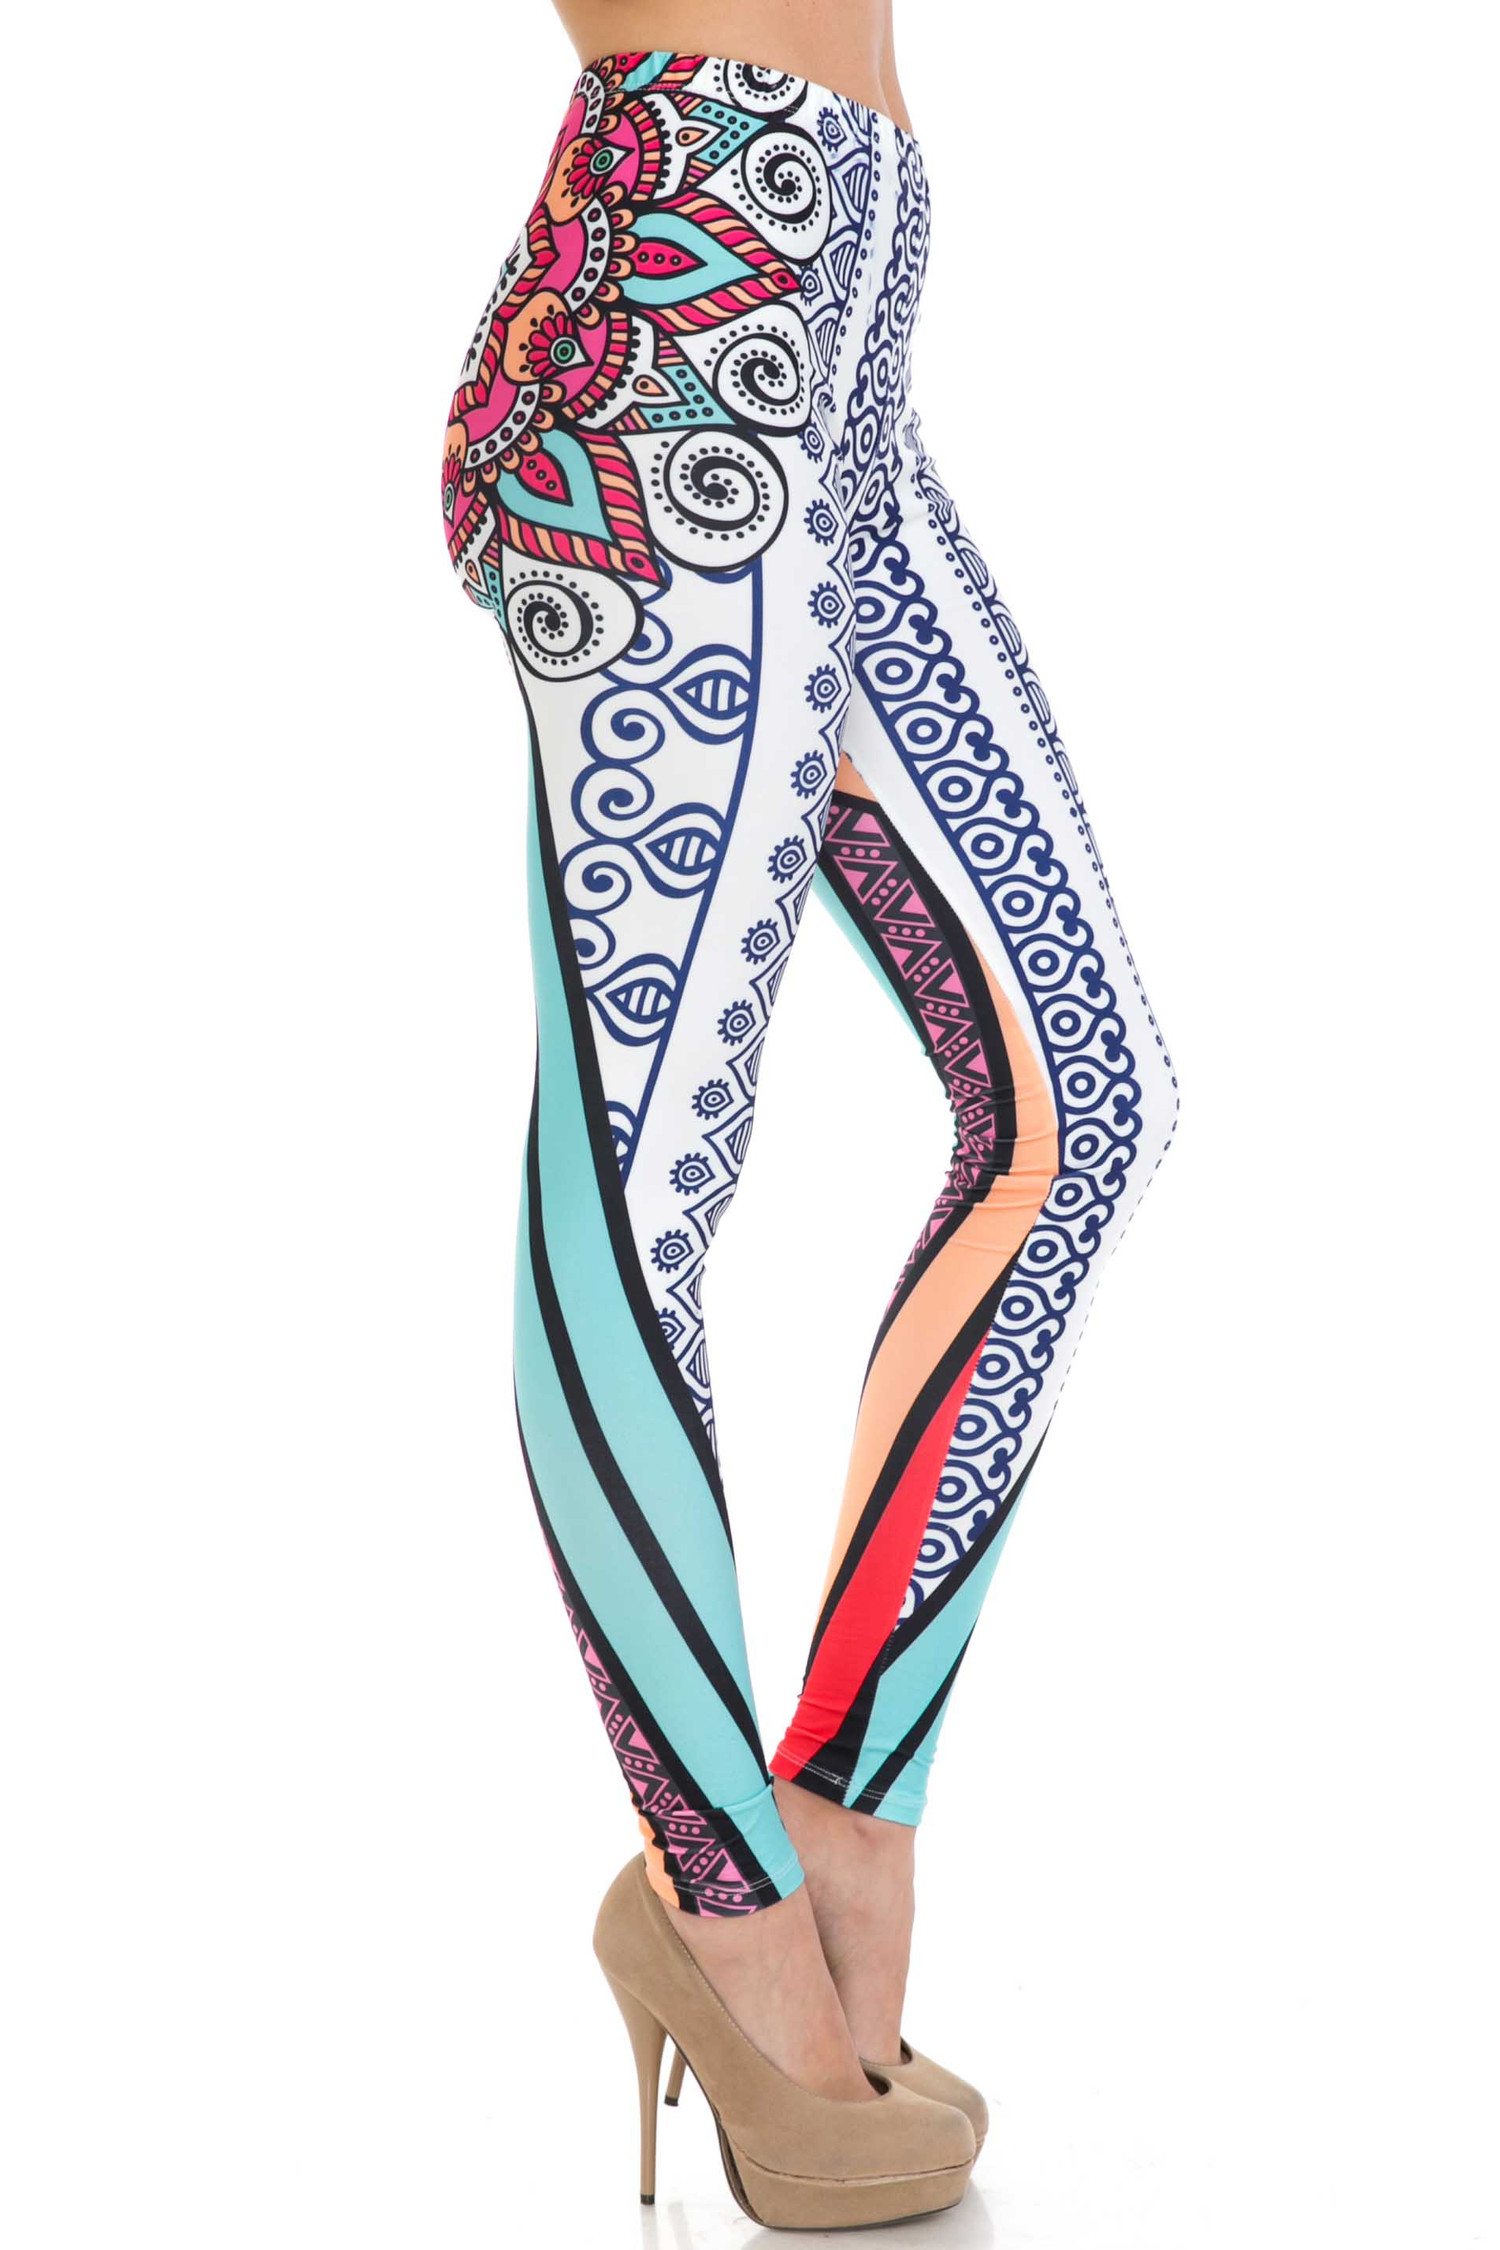 Creamy Soft Sexy Vertical Contouring Mandala Extra Plus Size Leggings - 3X-5X - USA Fashion™